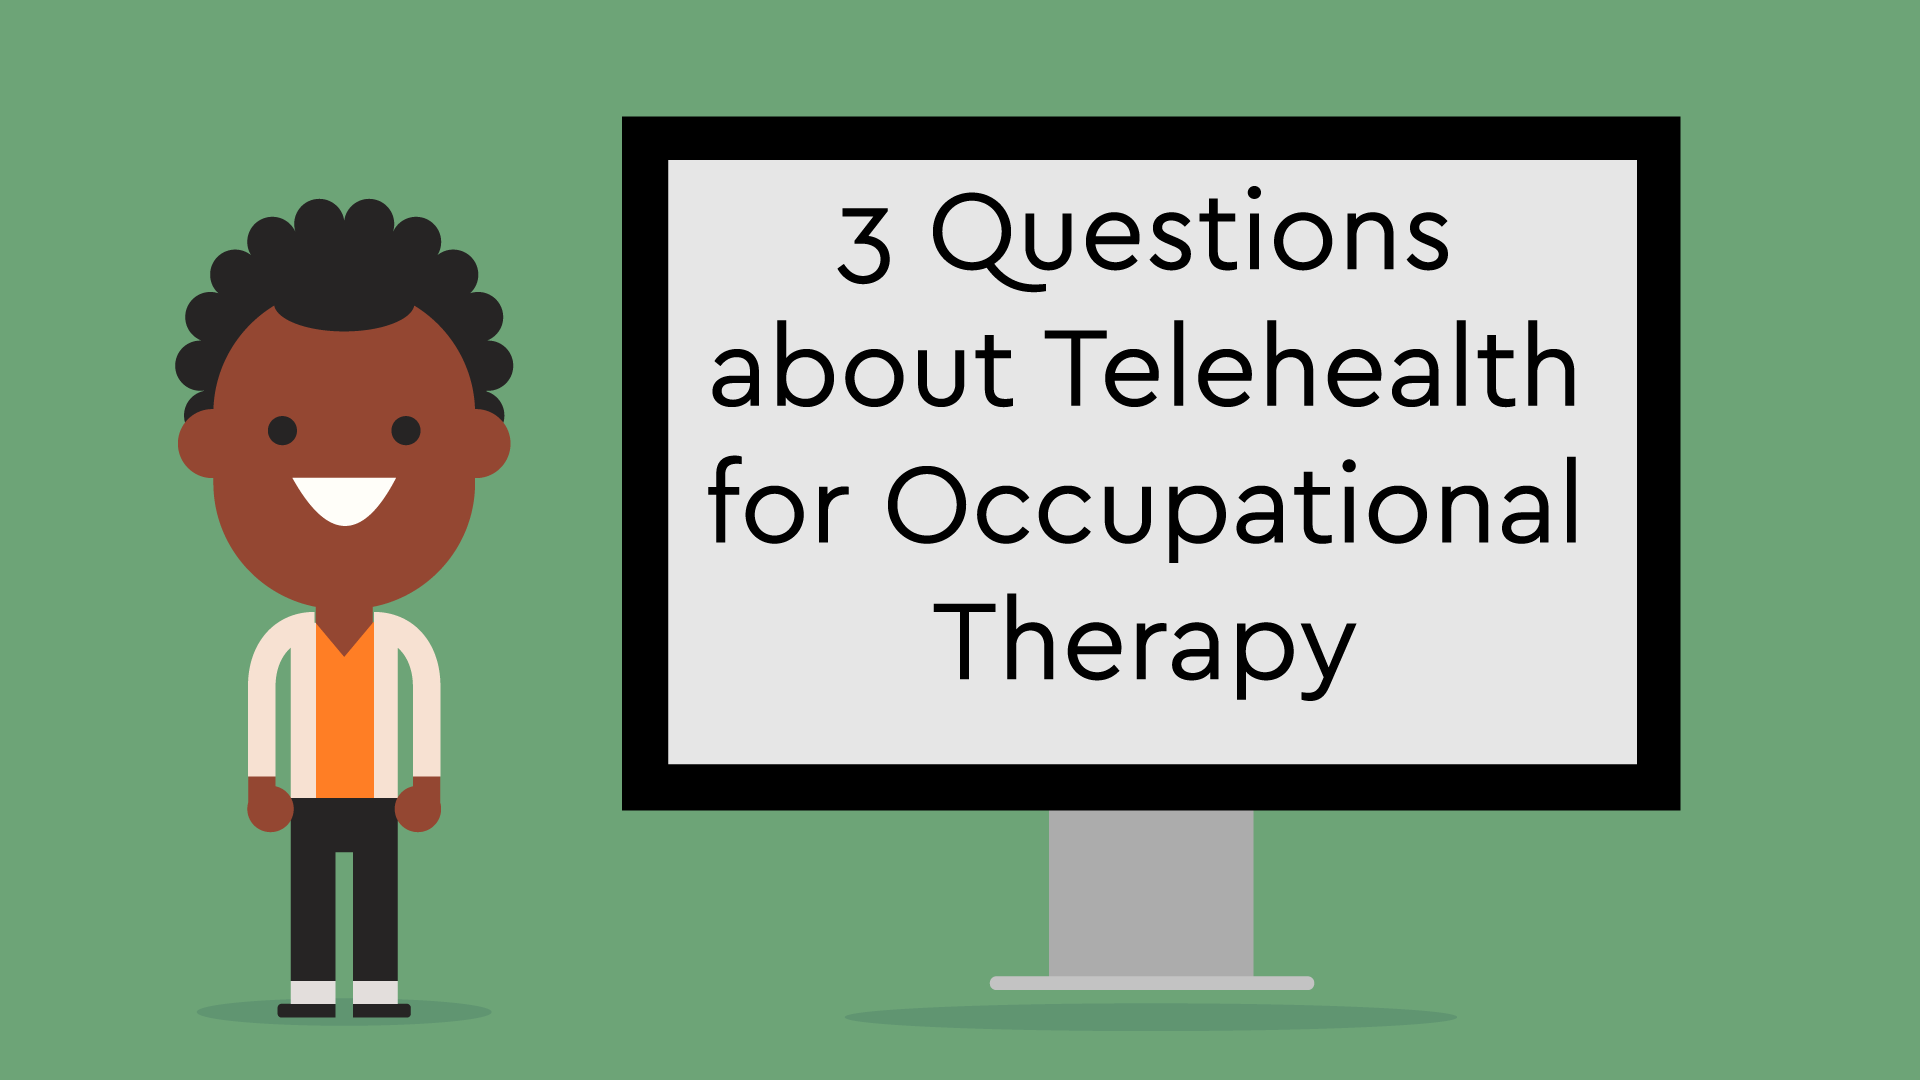 3 questions about telehealth for occupational therapist